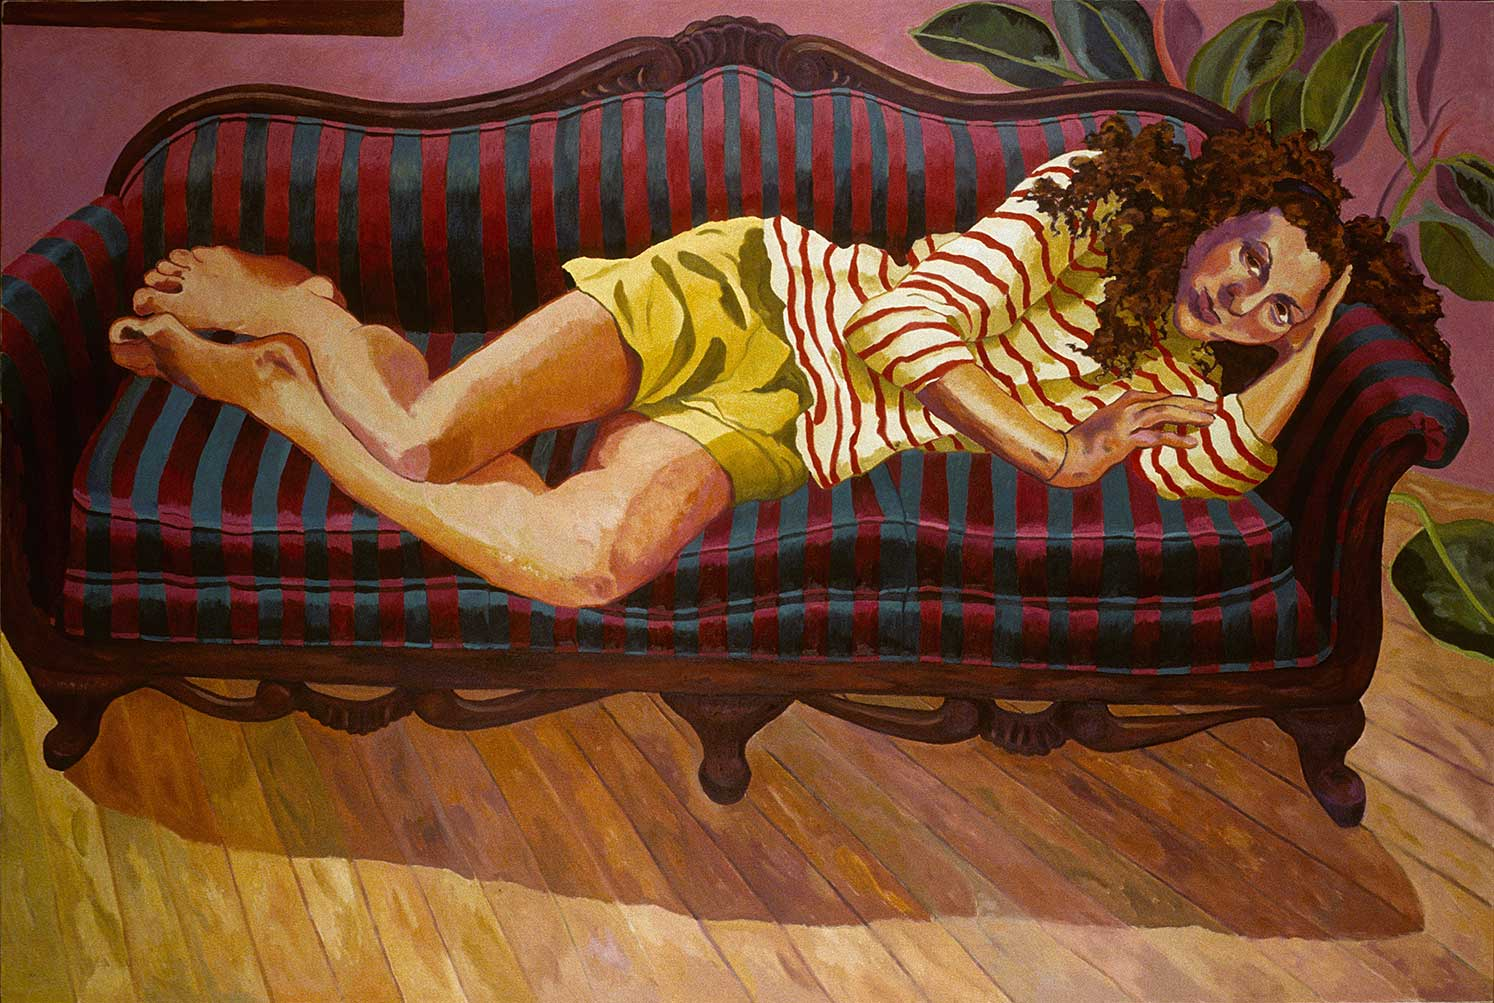 Hilary, Figurative oil painting by Mary Alice Copp